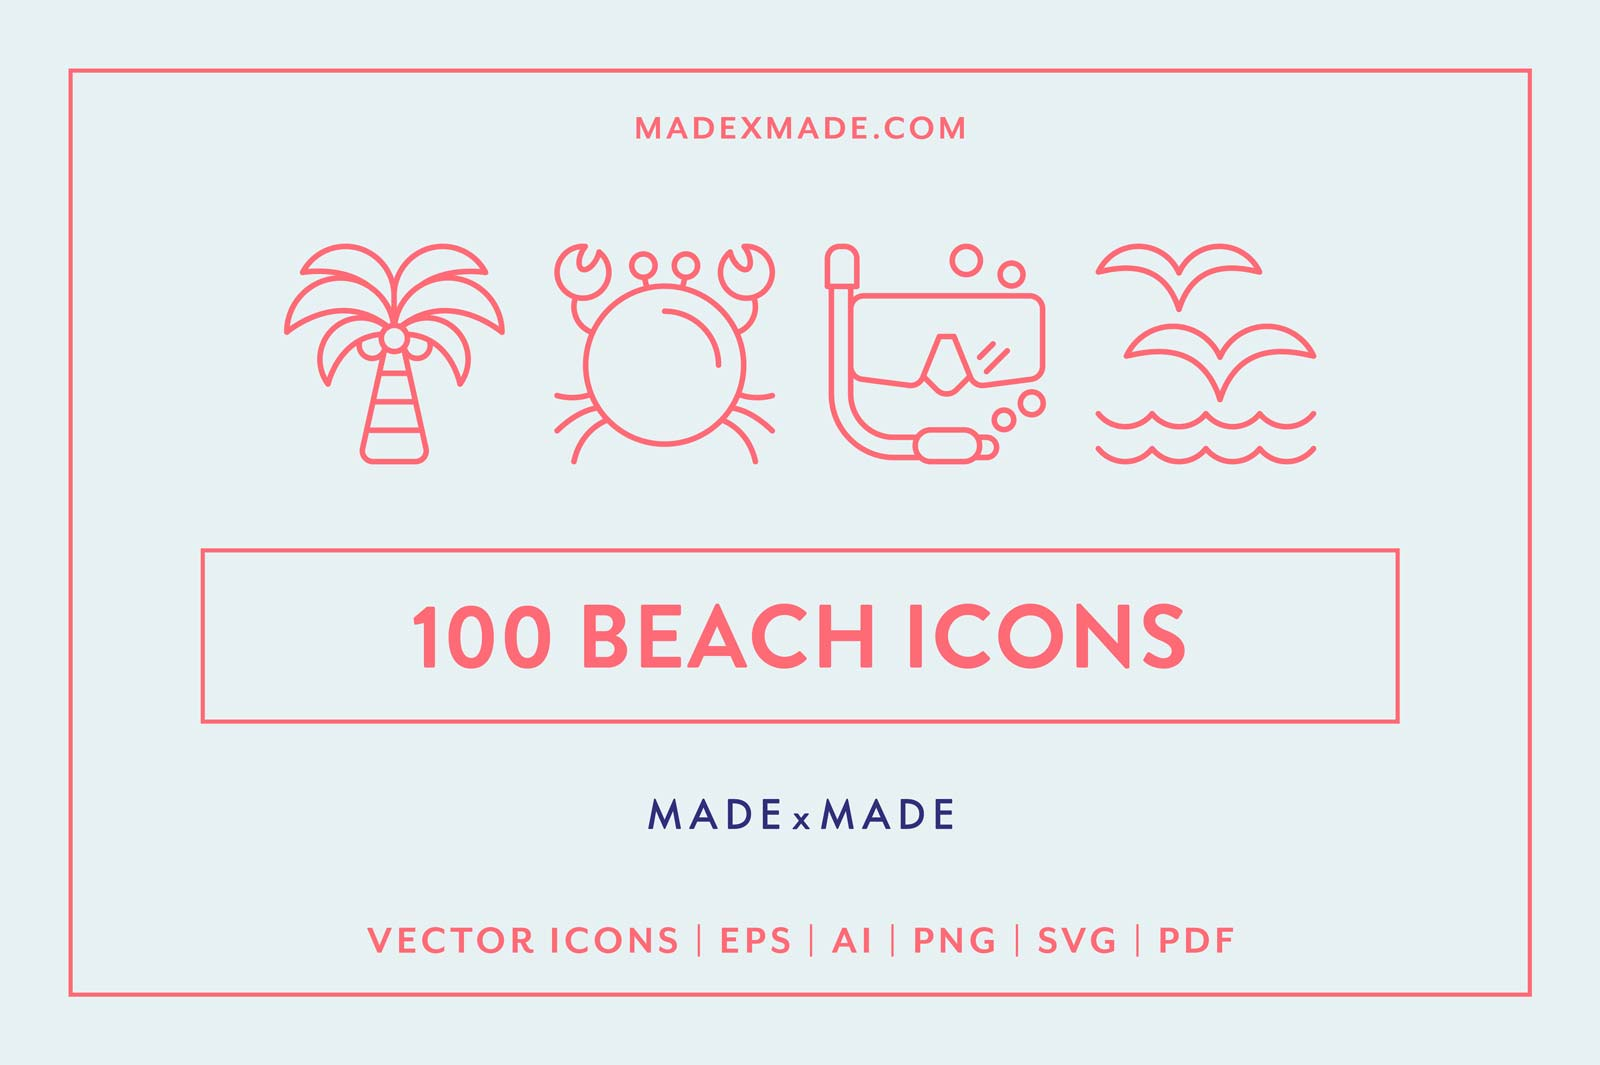 made x made icons beach